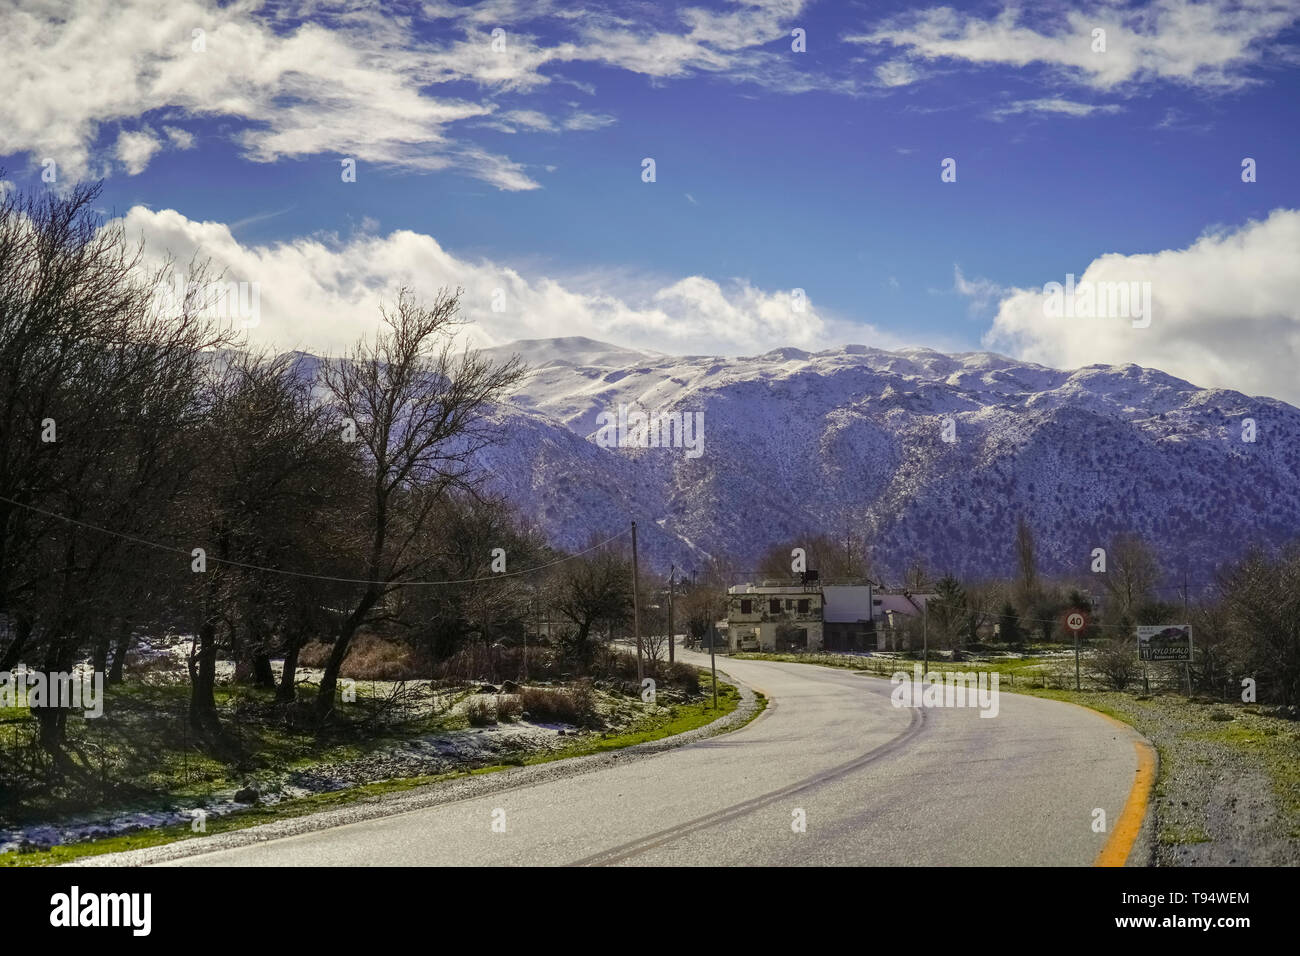 winding Mountain road. Traveling concept. Photographed in Crete, Greece Stock Photo